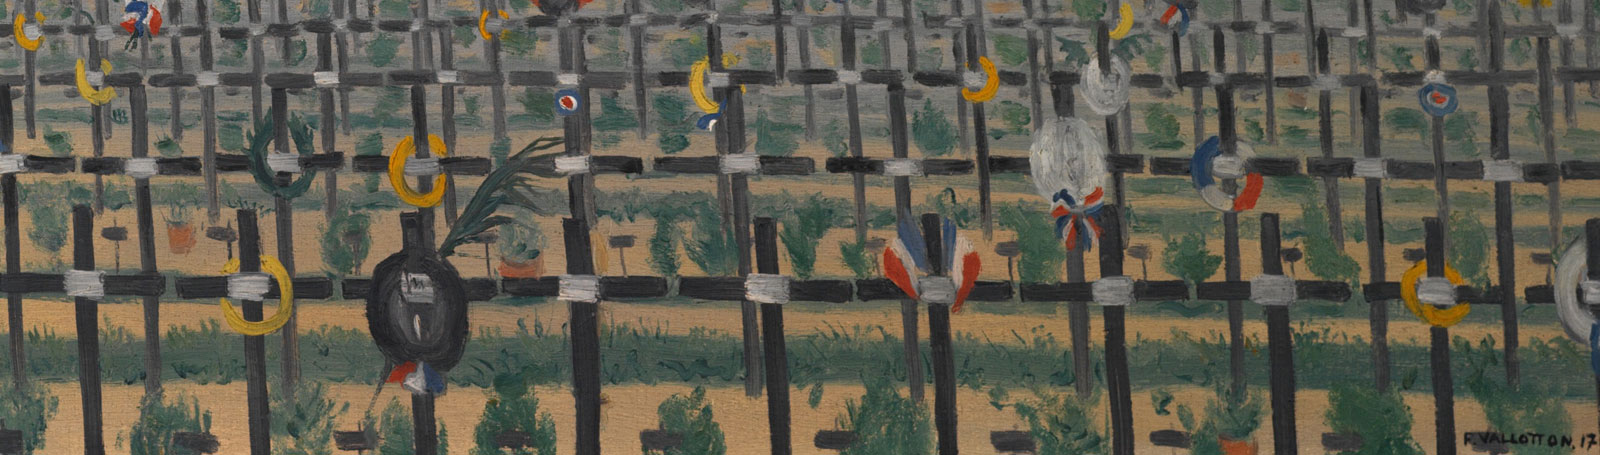 Artwork of war graves/cemetery